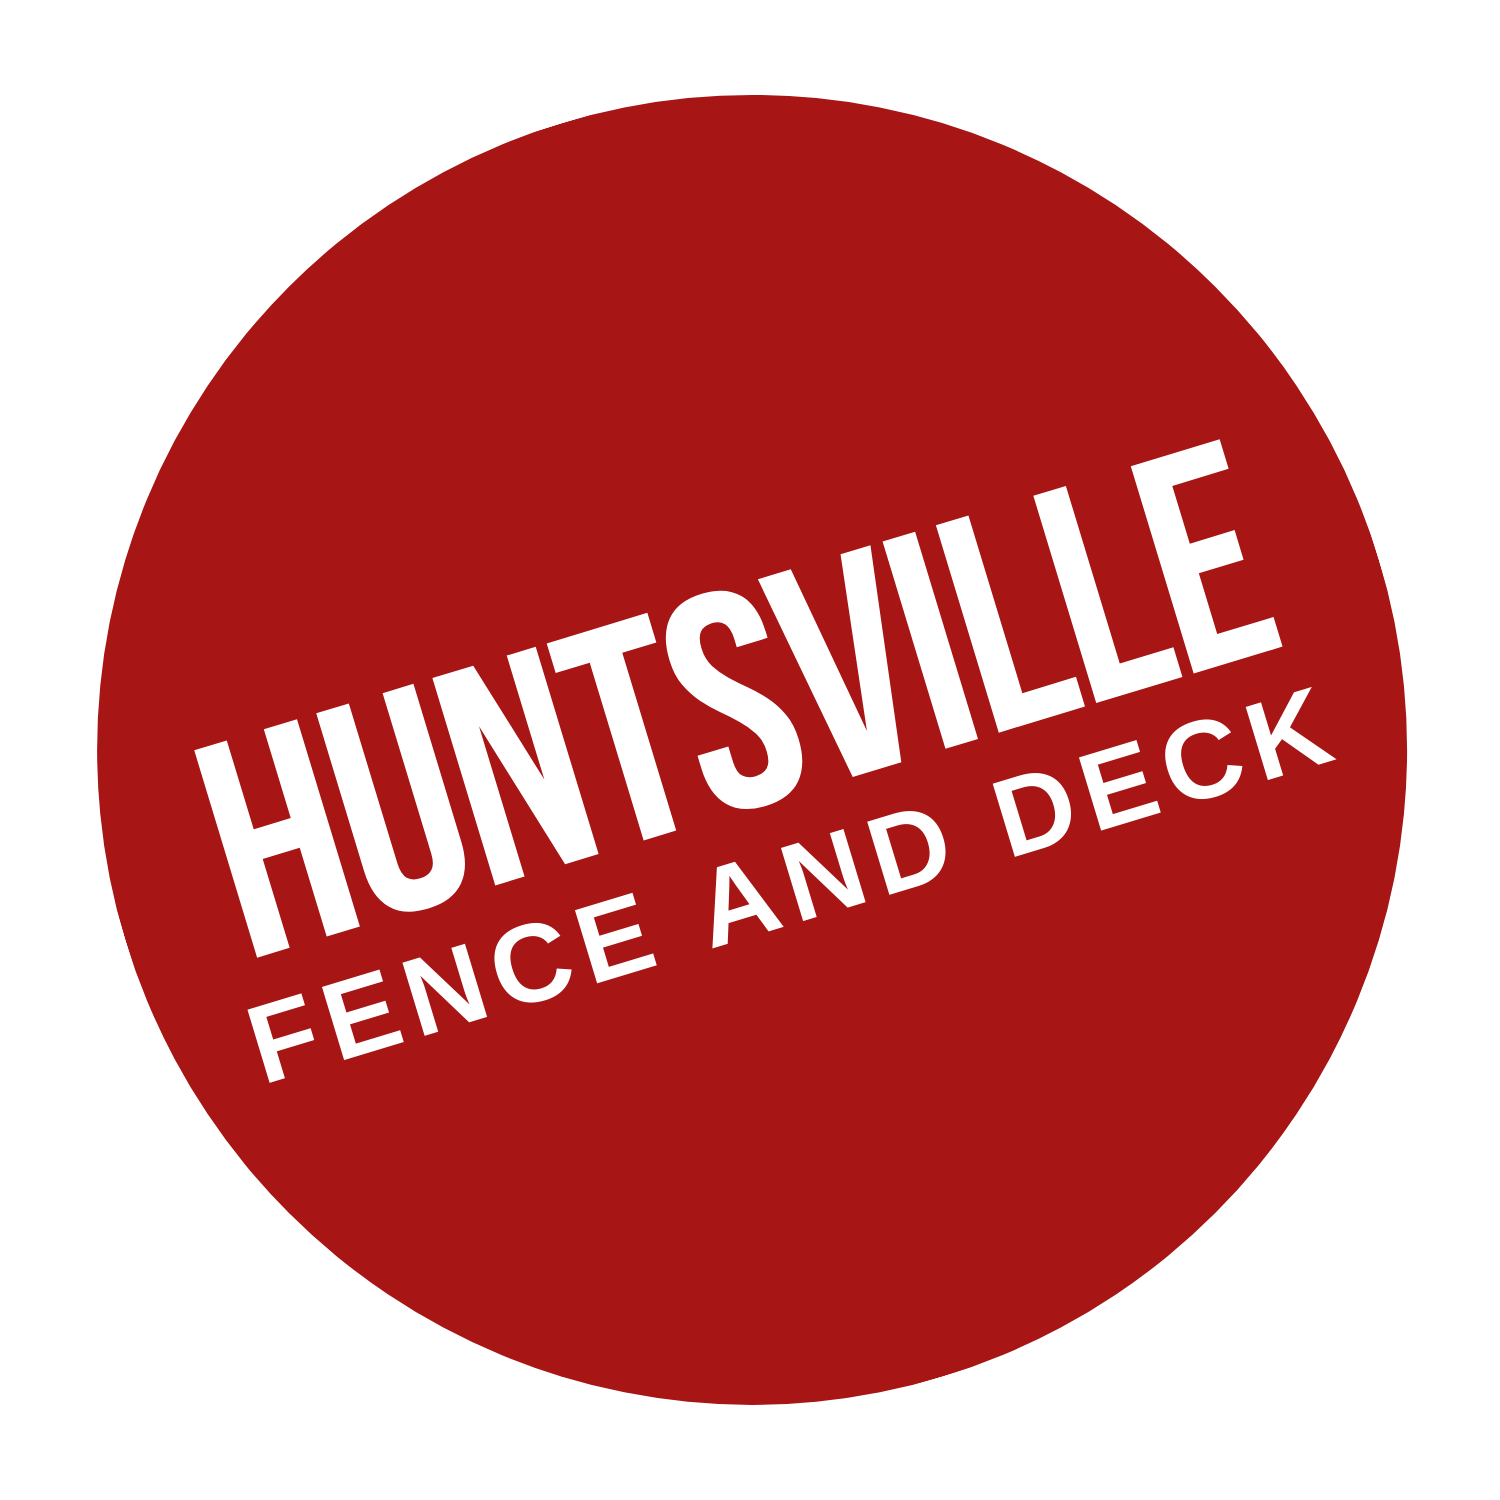 Huntsville Fence & Deck | The #1 Fencing Company in Huntsville